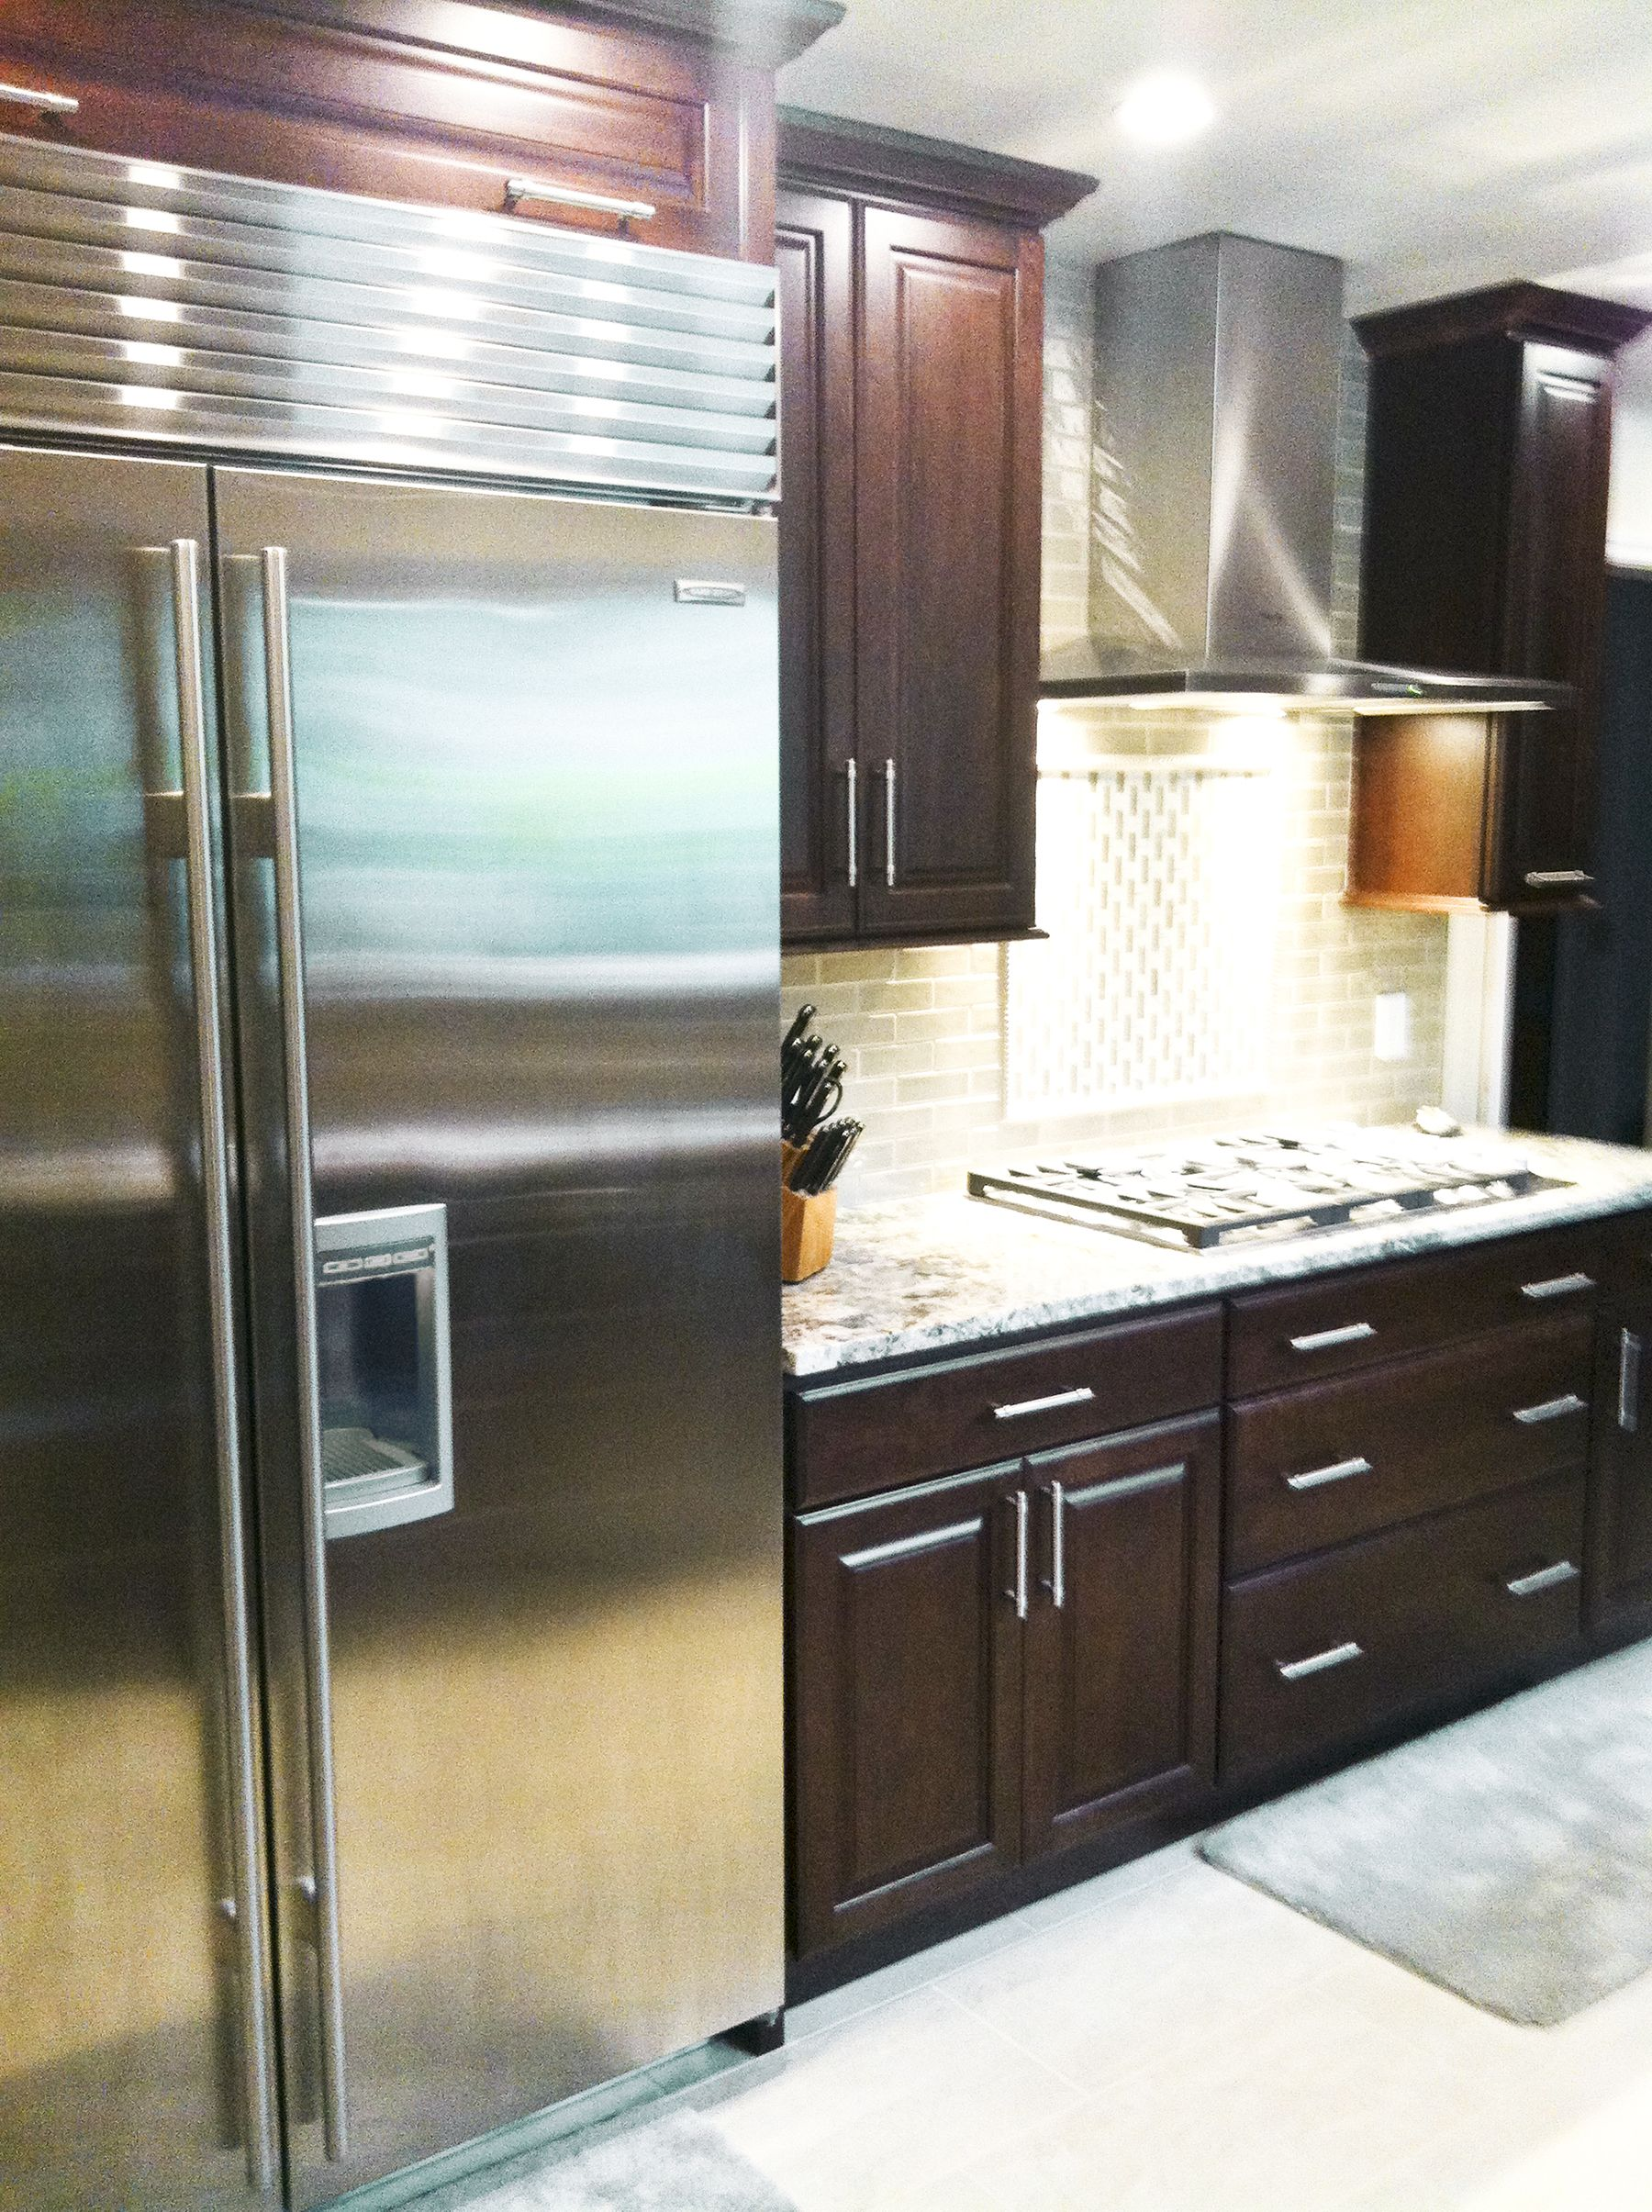 A Kitchen Remodel In Daytona Beach Florida Took A Kitchen From Shabby To Upscale And Modern Design Brown Kitchen Cabinets Brown Cabinets Dark Brown Cabinets